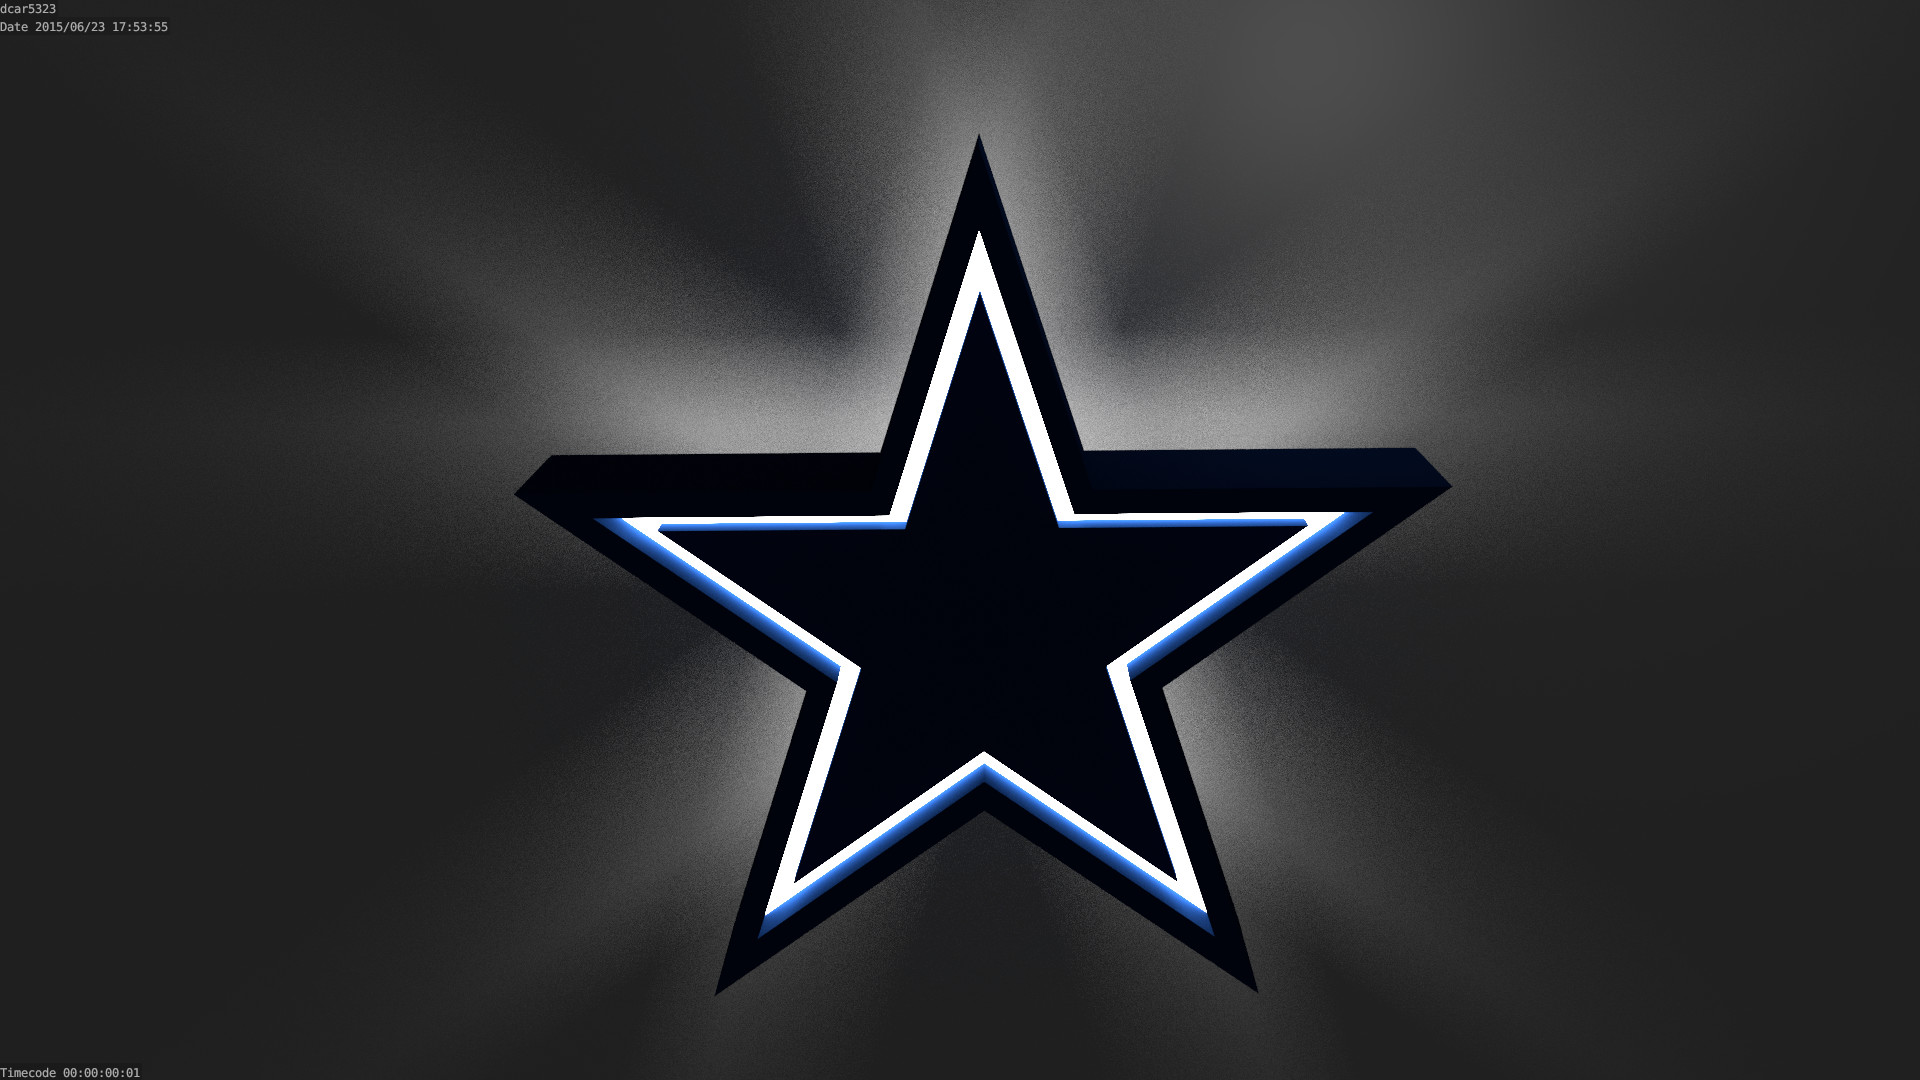 I'm learning how to 3D Model, so I'm recreating NFL logos as practice.  Here's the Cowboys logo!